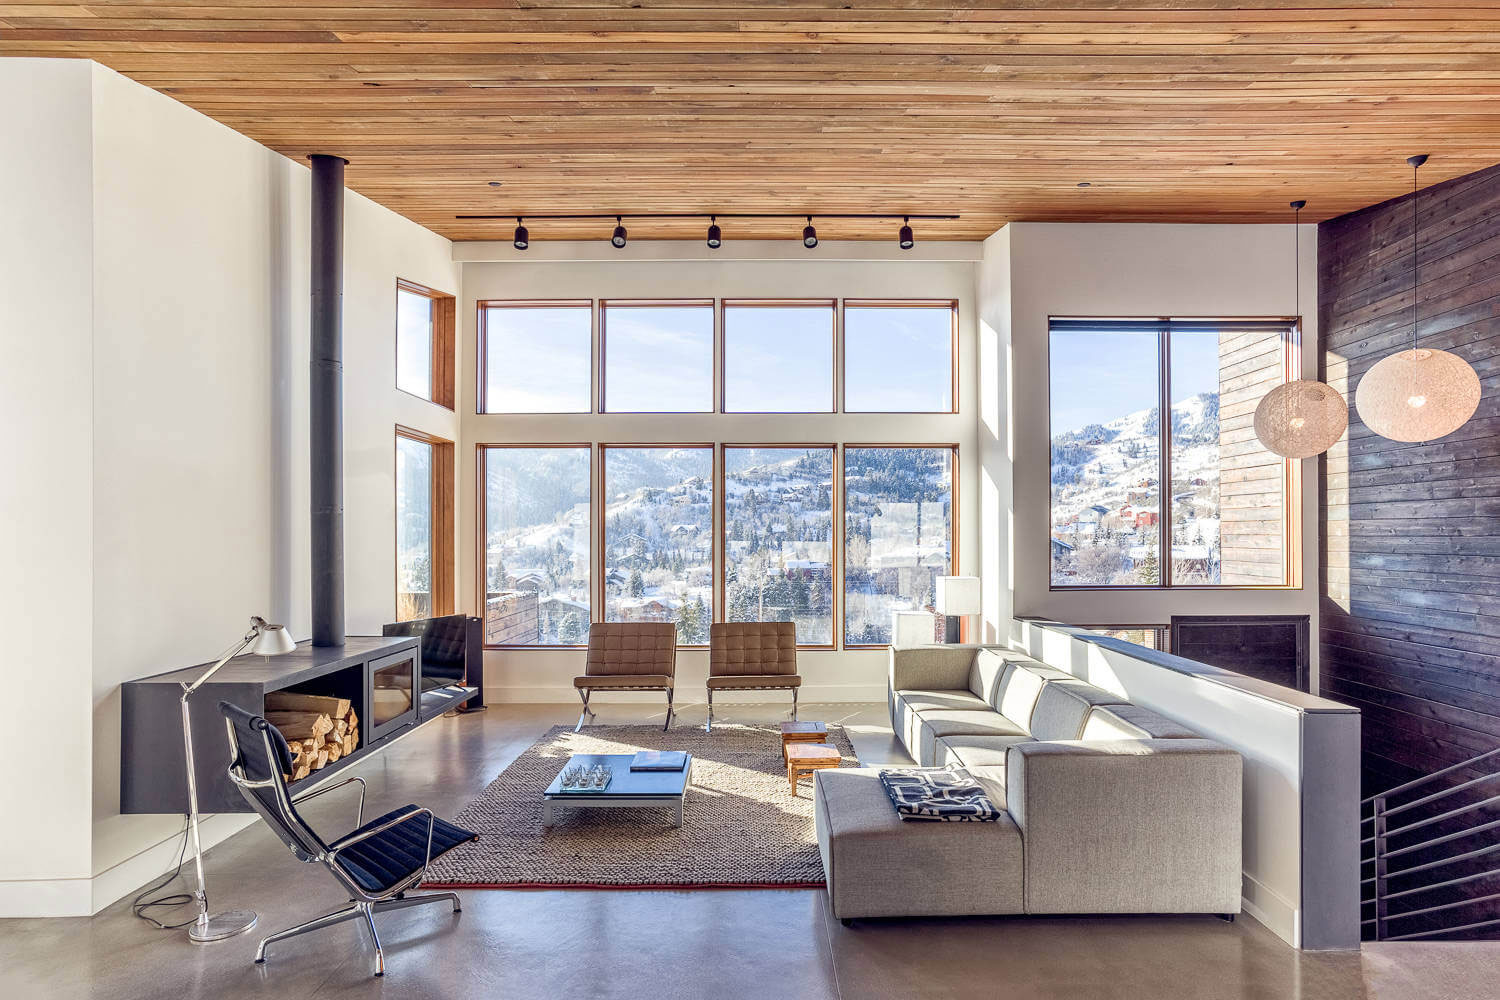 Park City Design Build Creates A Cozy Retreat In The Snowed Up Mountains Of Park  City, Utah